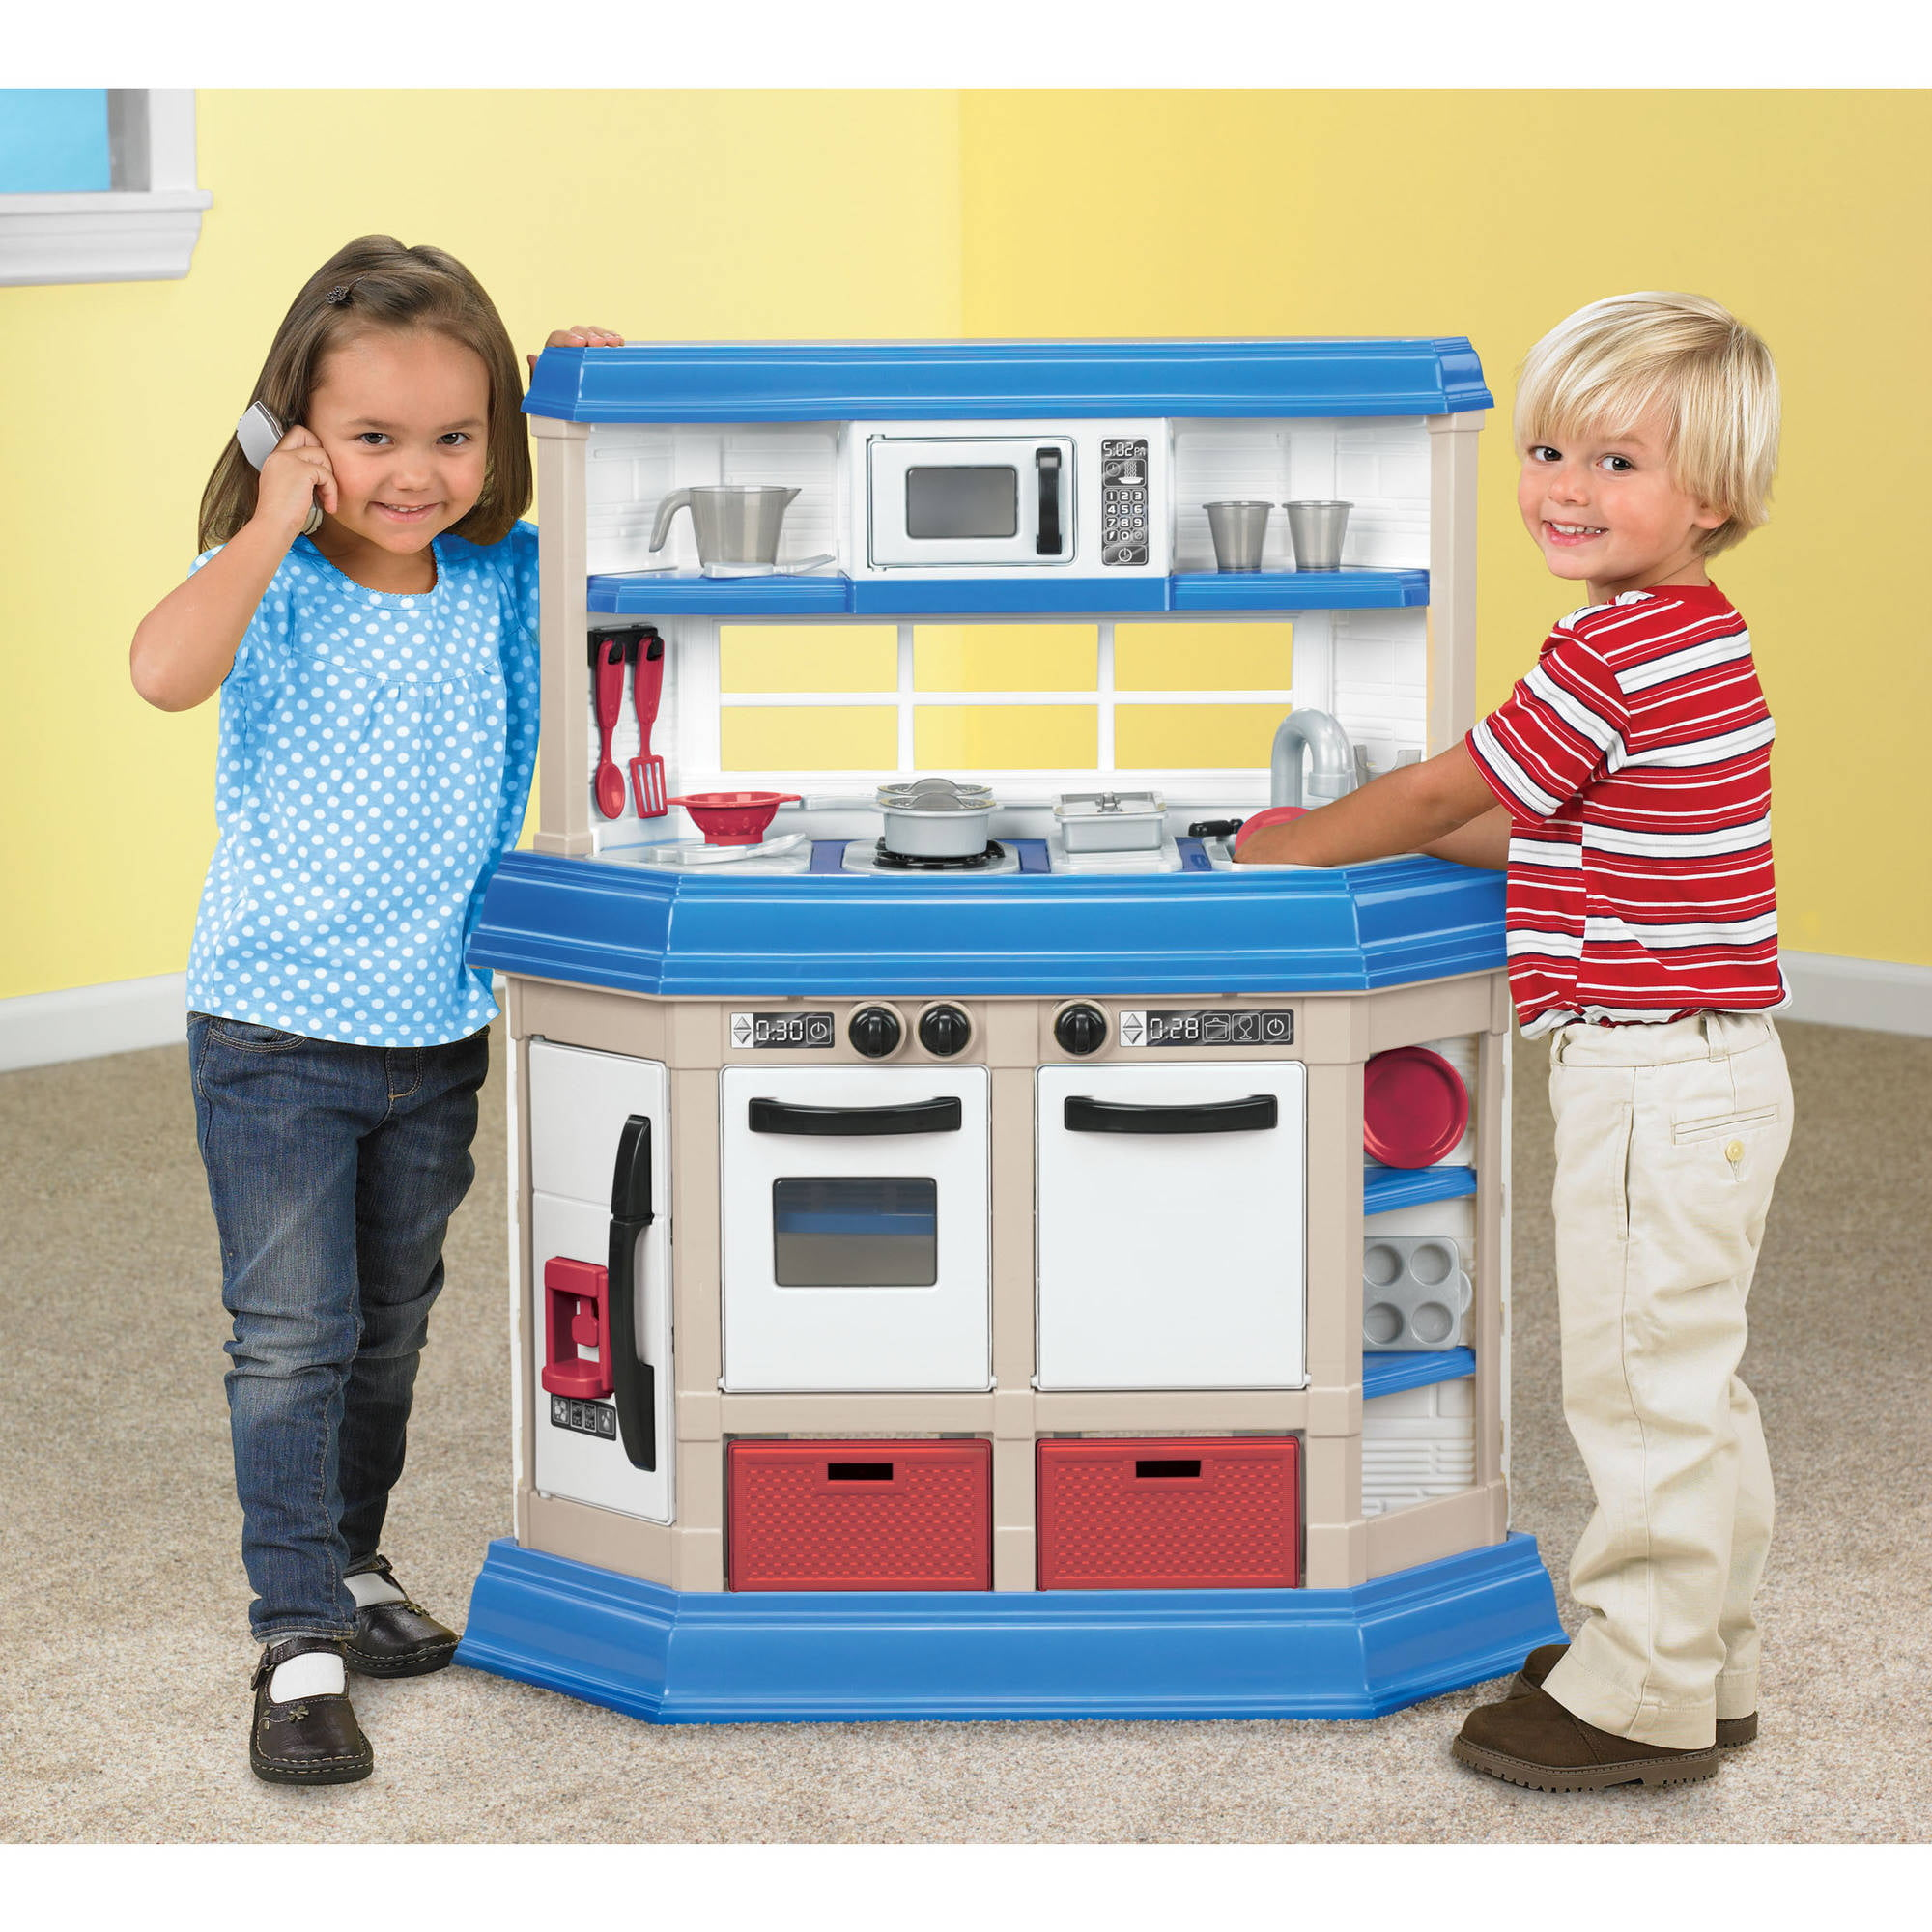 American Plastic Toys Cookin Kitchen Play Set with Realistic ...